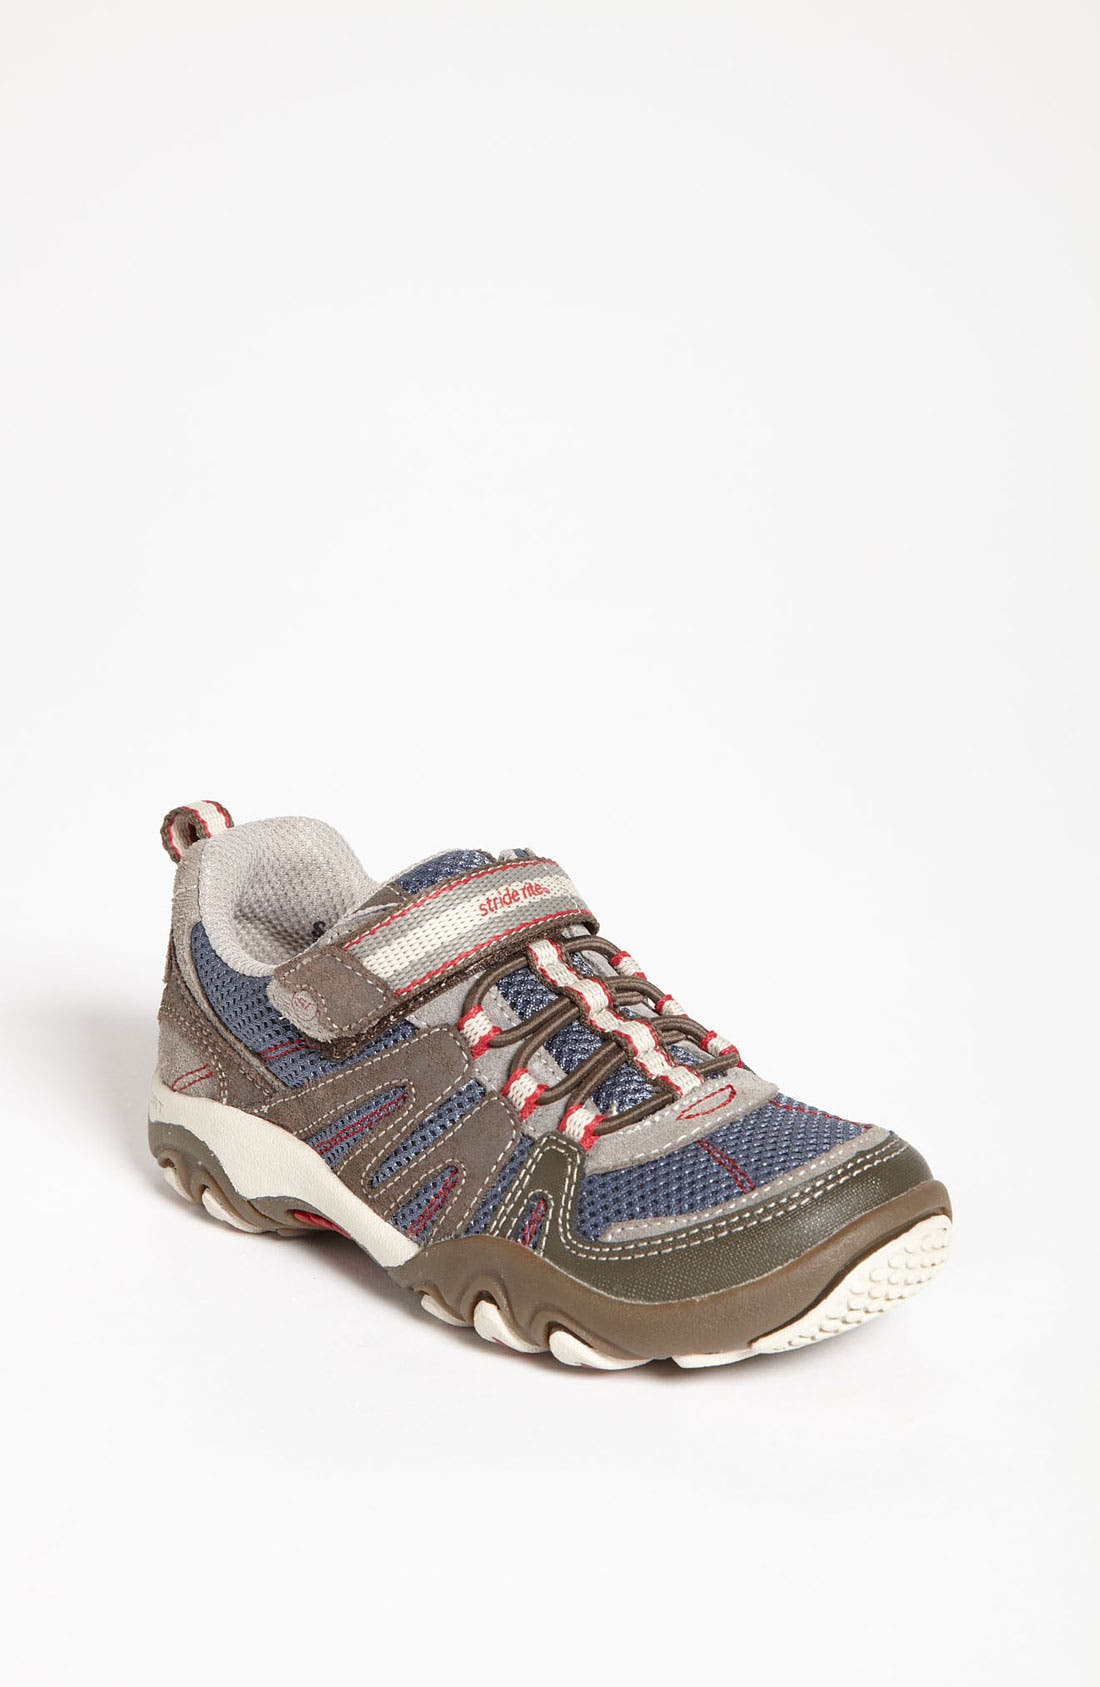 Main Image - Stride Rite 'Palmer' Sneaker (Toddler & Little Kid)